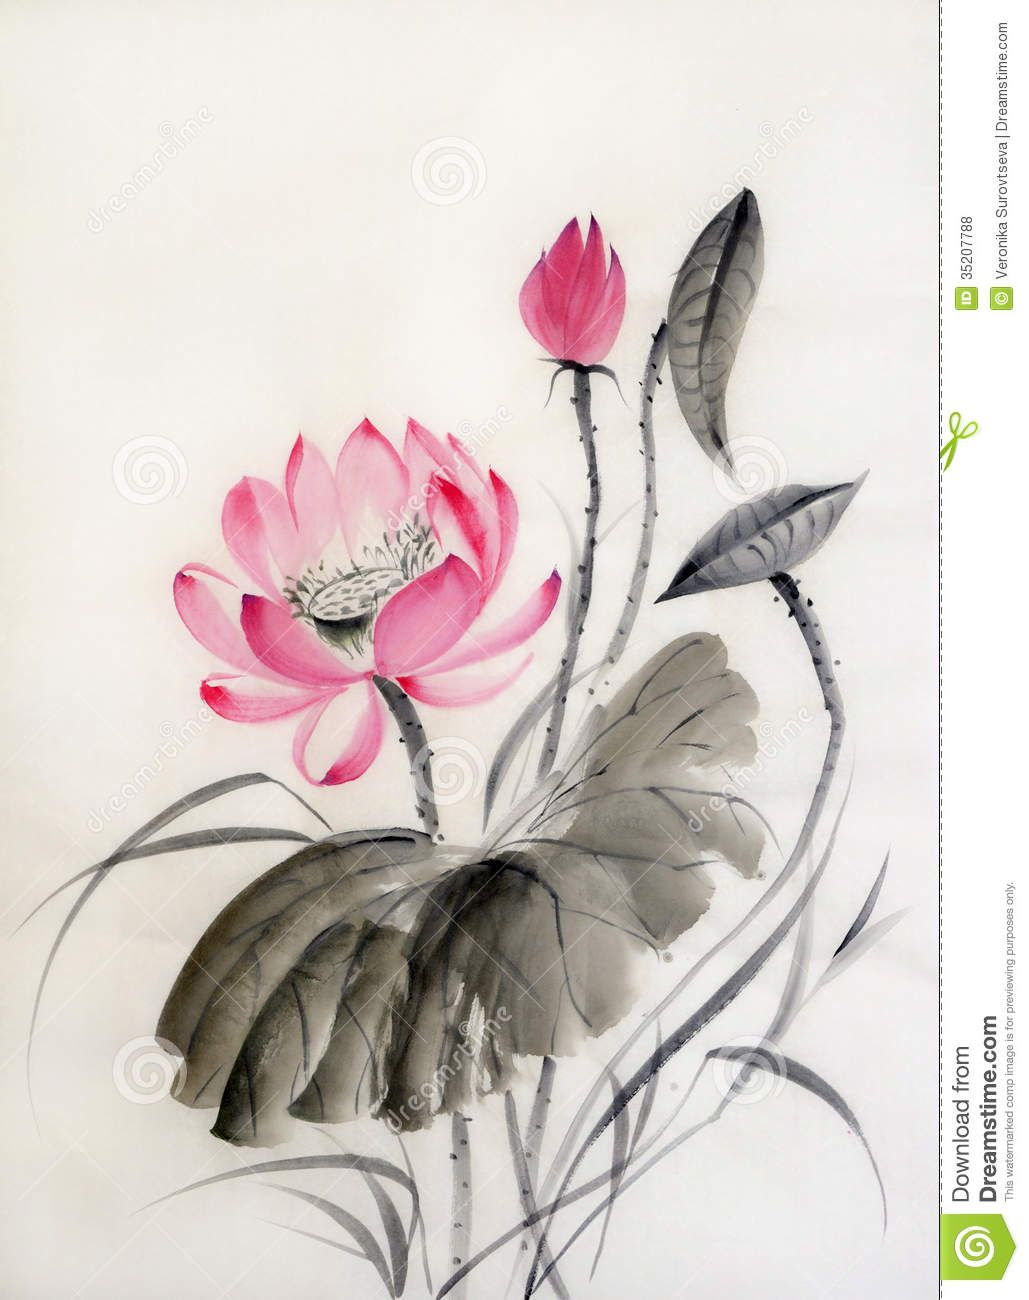 Free illustration watercolor pigment color free image - Watercolor Painting Of Lotus Flower Royalty Free Stock Photos